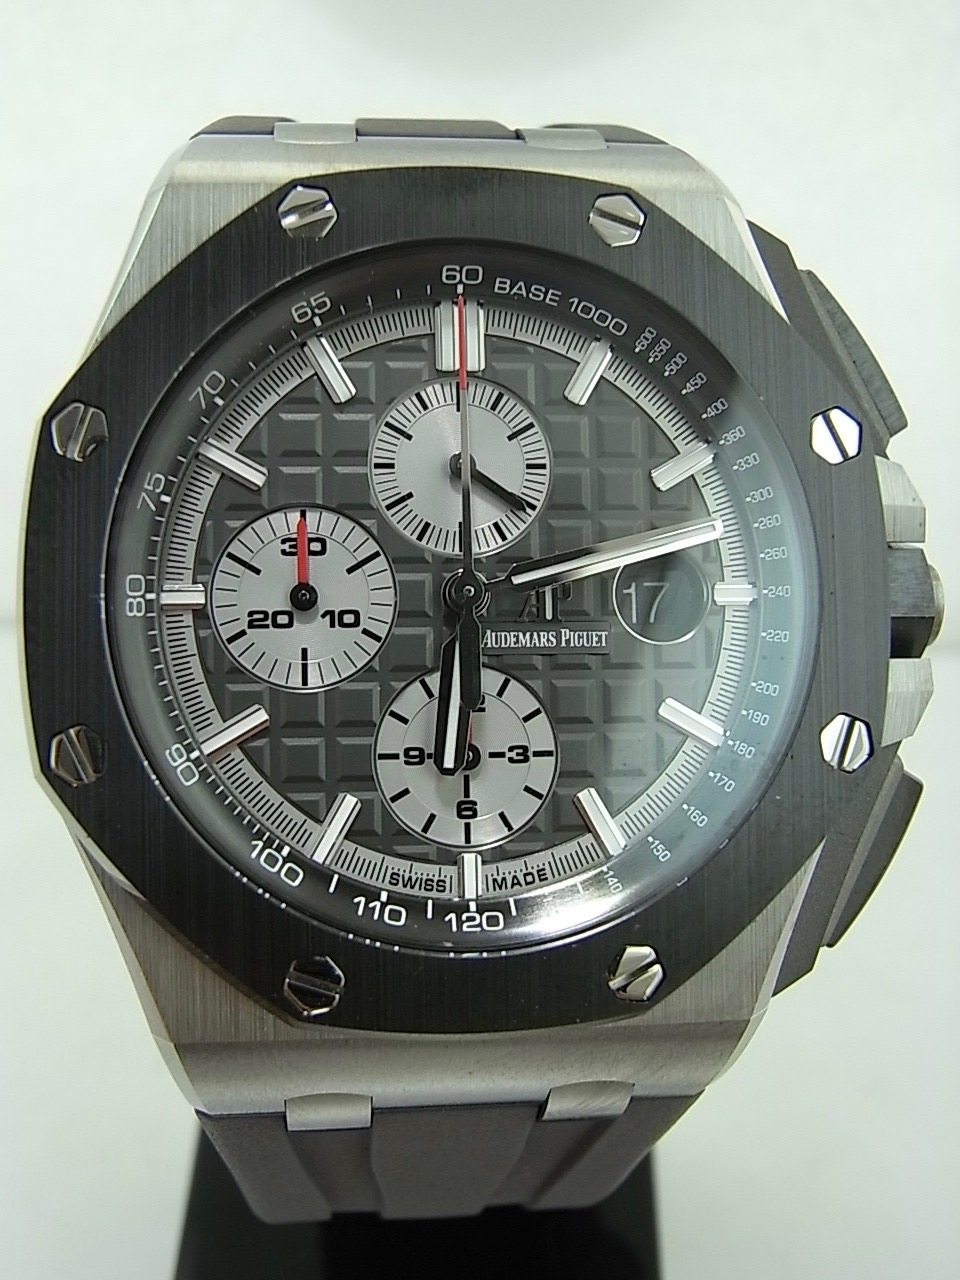 Audemars piguet royal oak offshore ceramic swiss watch box for Royal oak offshore ceramic